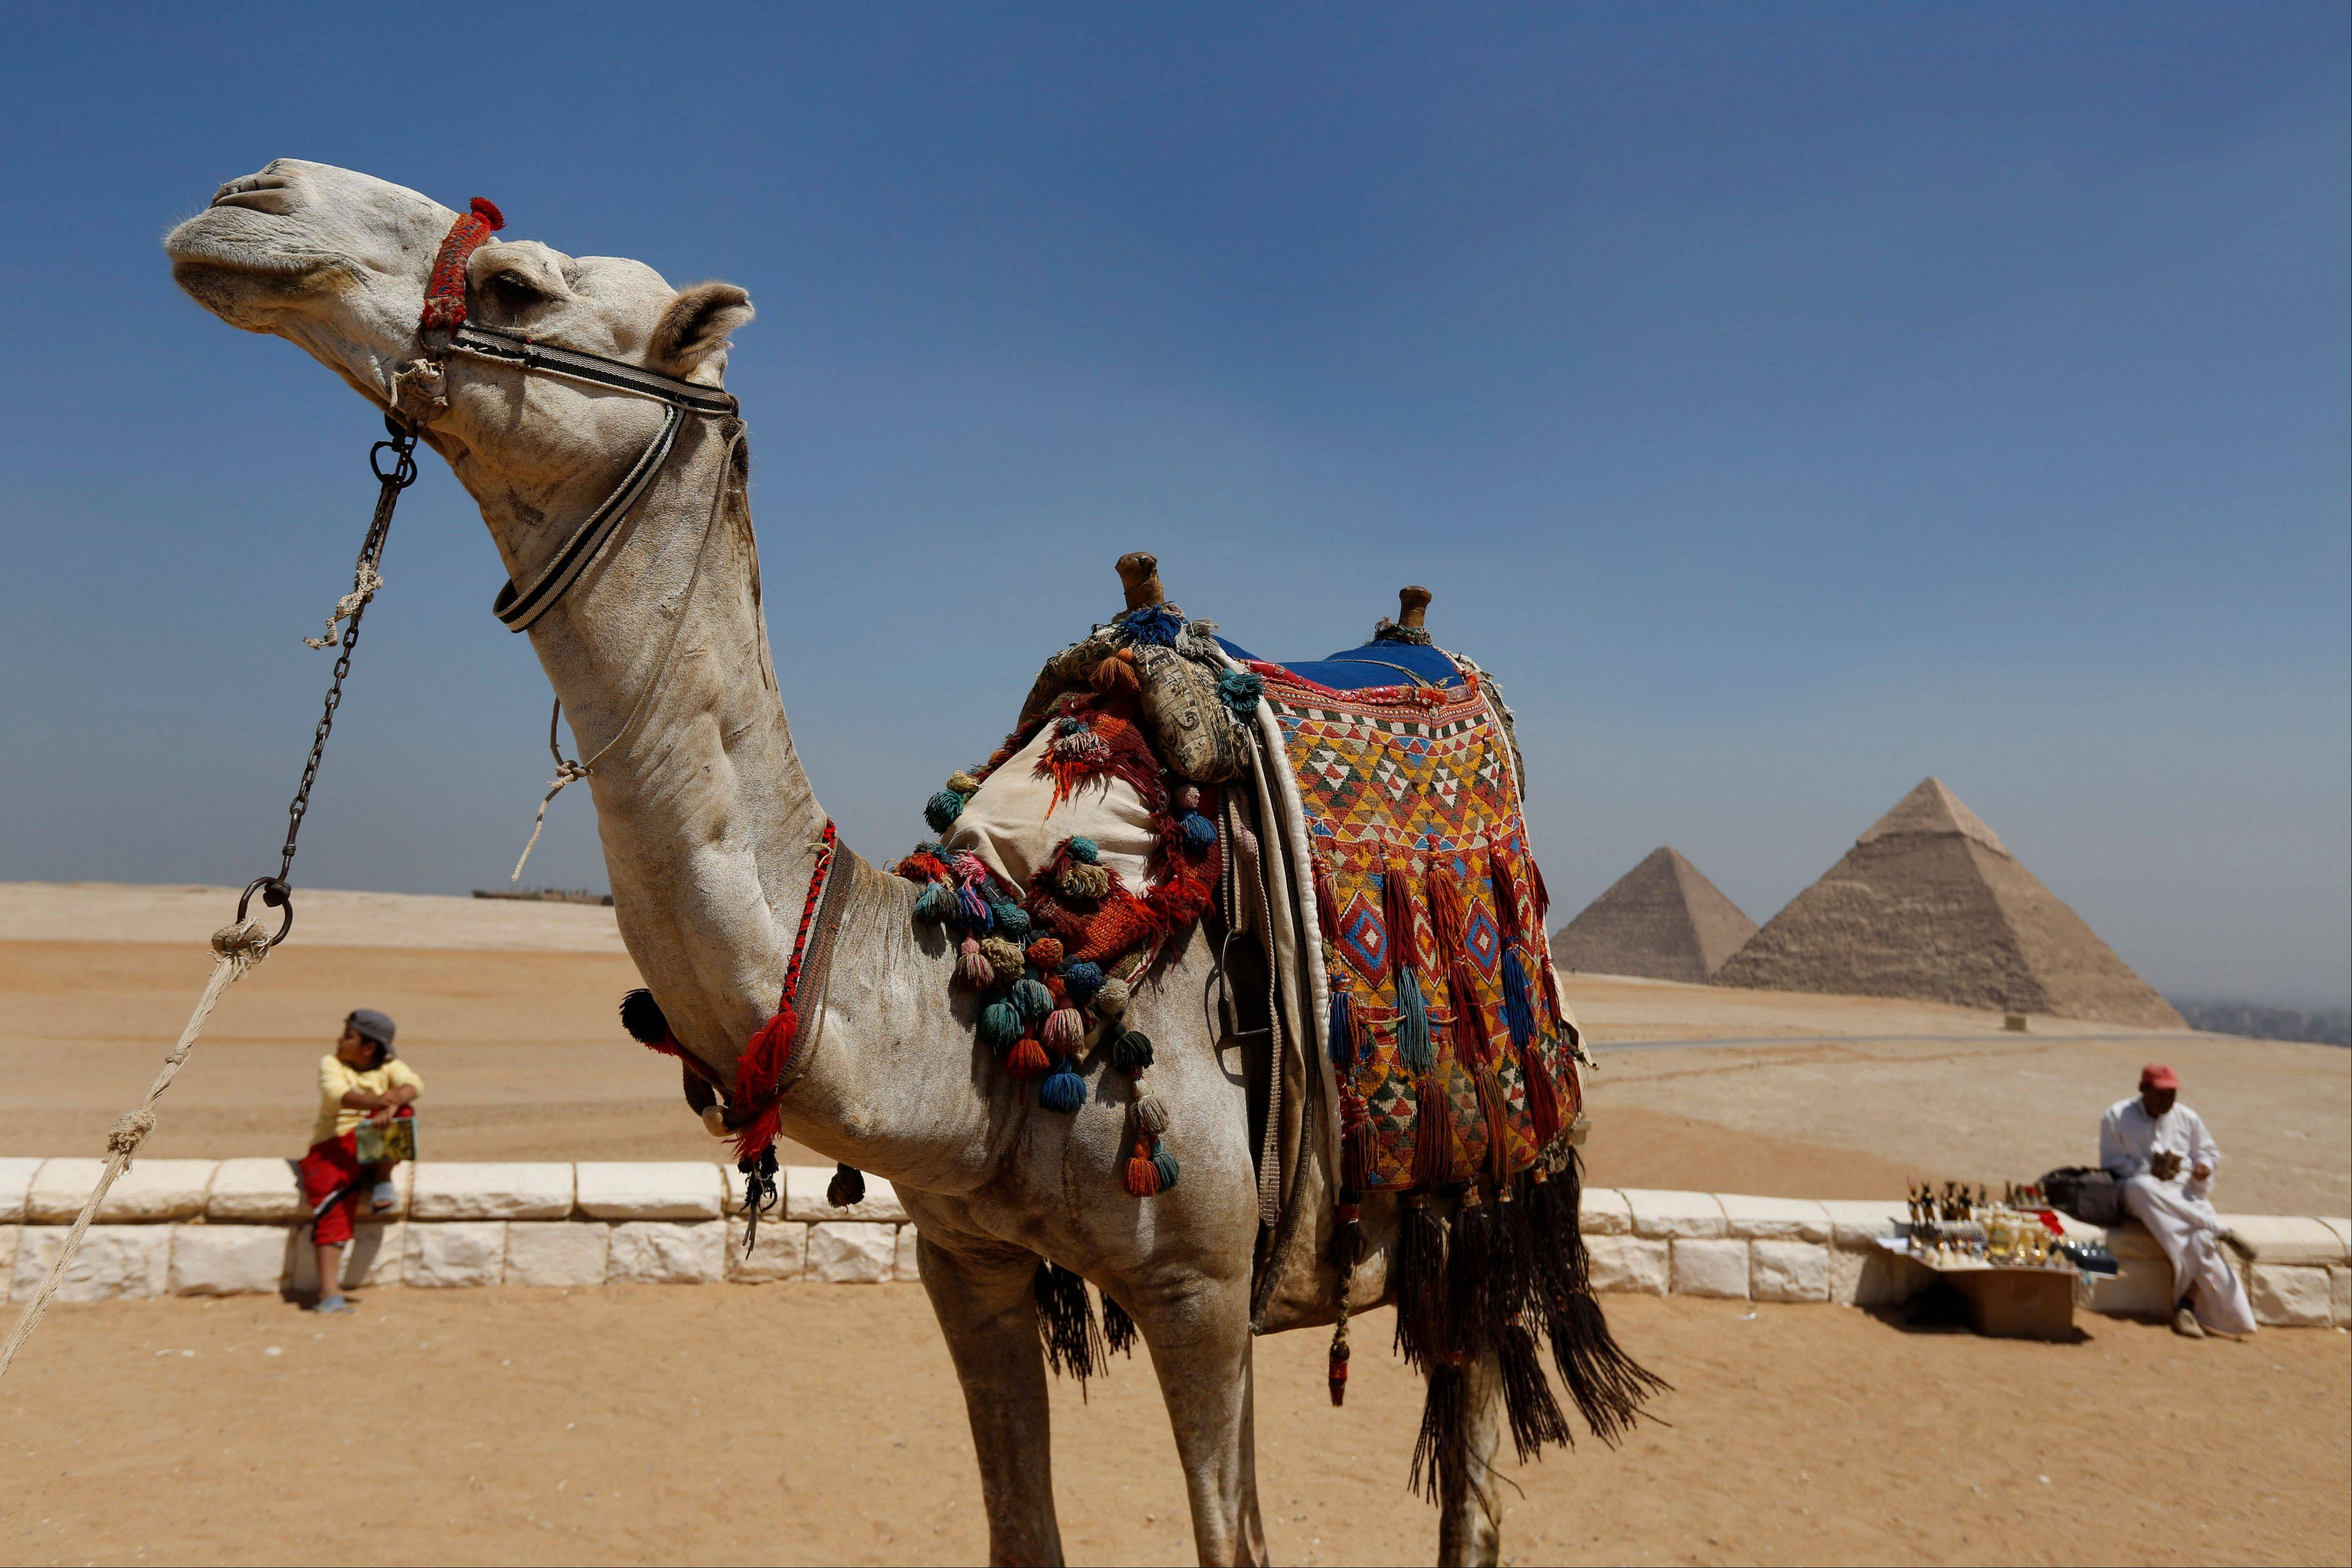 A tourist guide sits close to his camel as a vendor waits for tourists to offer souvenirs for sale at the historical site of the Giza Pyramids, near Cairo, Egypt.